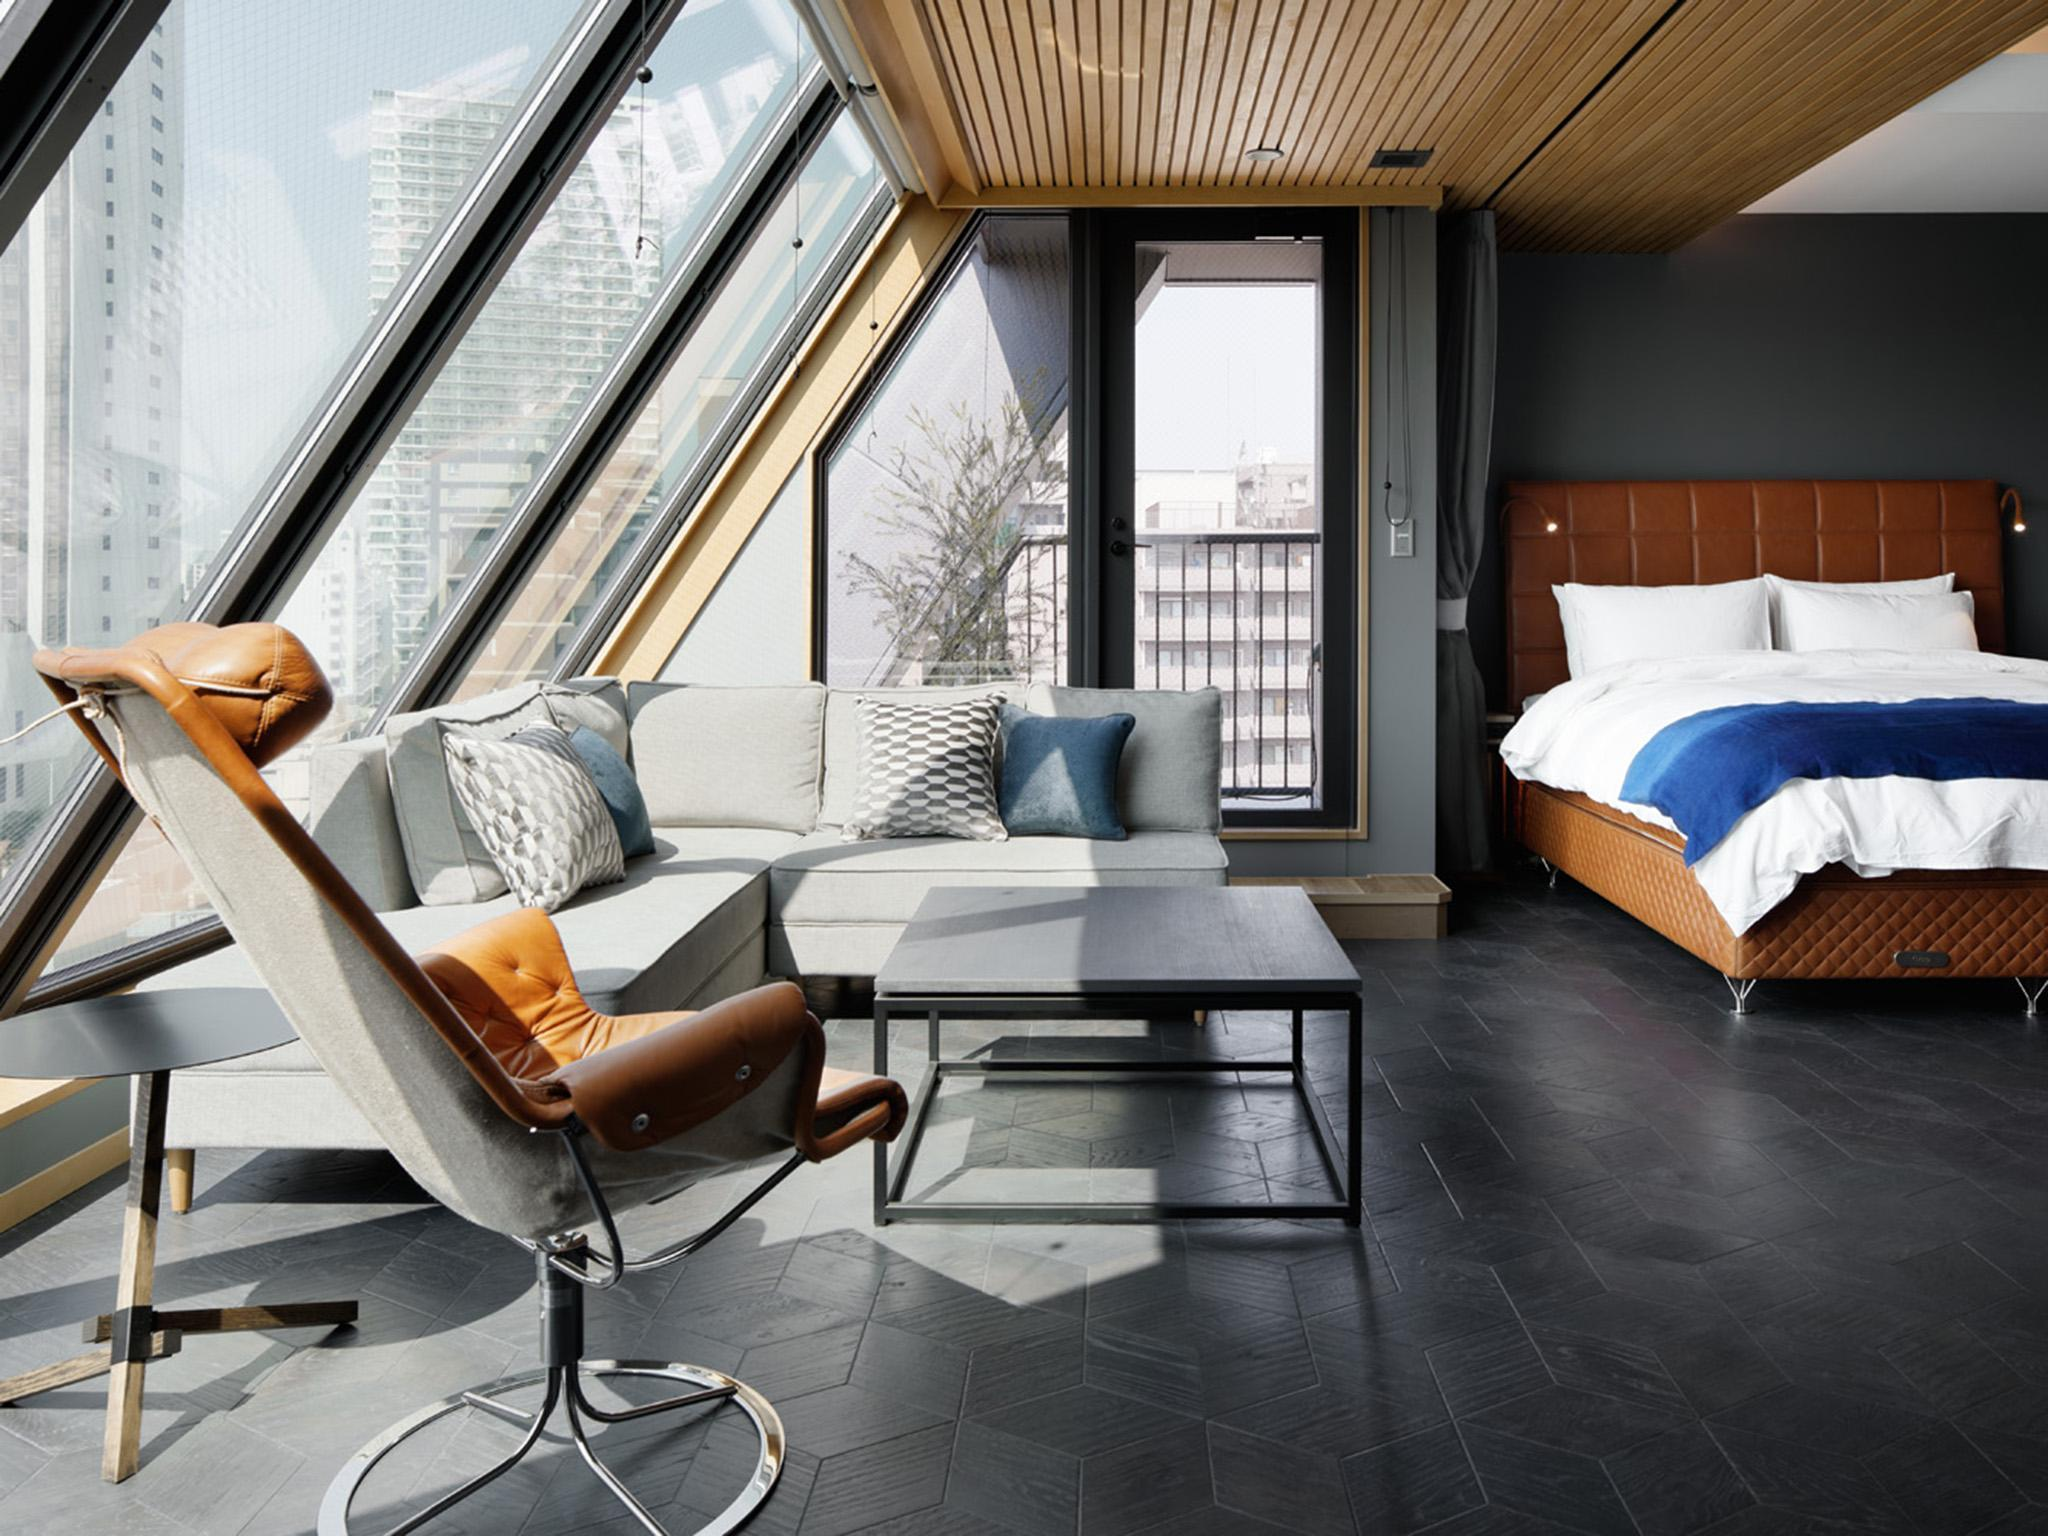 Wired Hotel Asakusa in Tokyo - Room Deals, Photos & Reviews